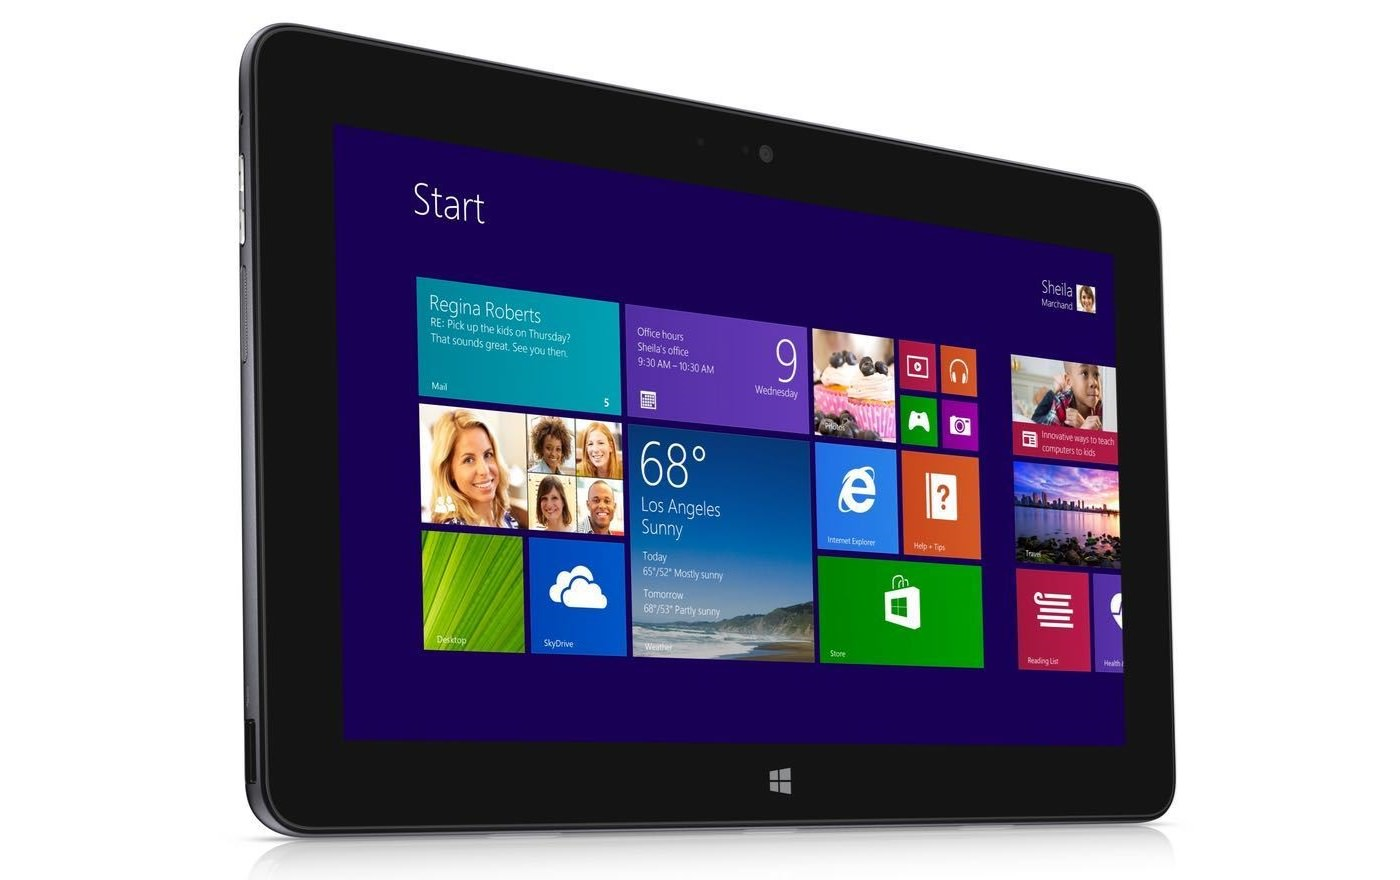 Buy Dell Venue 11 Pro - 7140 Tablet for as Little as £286.79